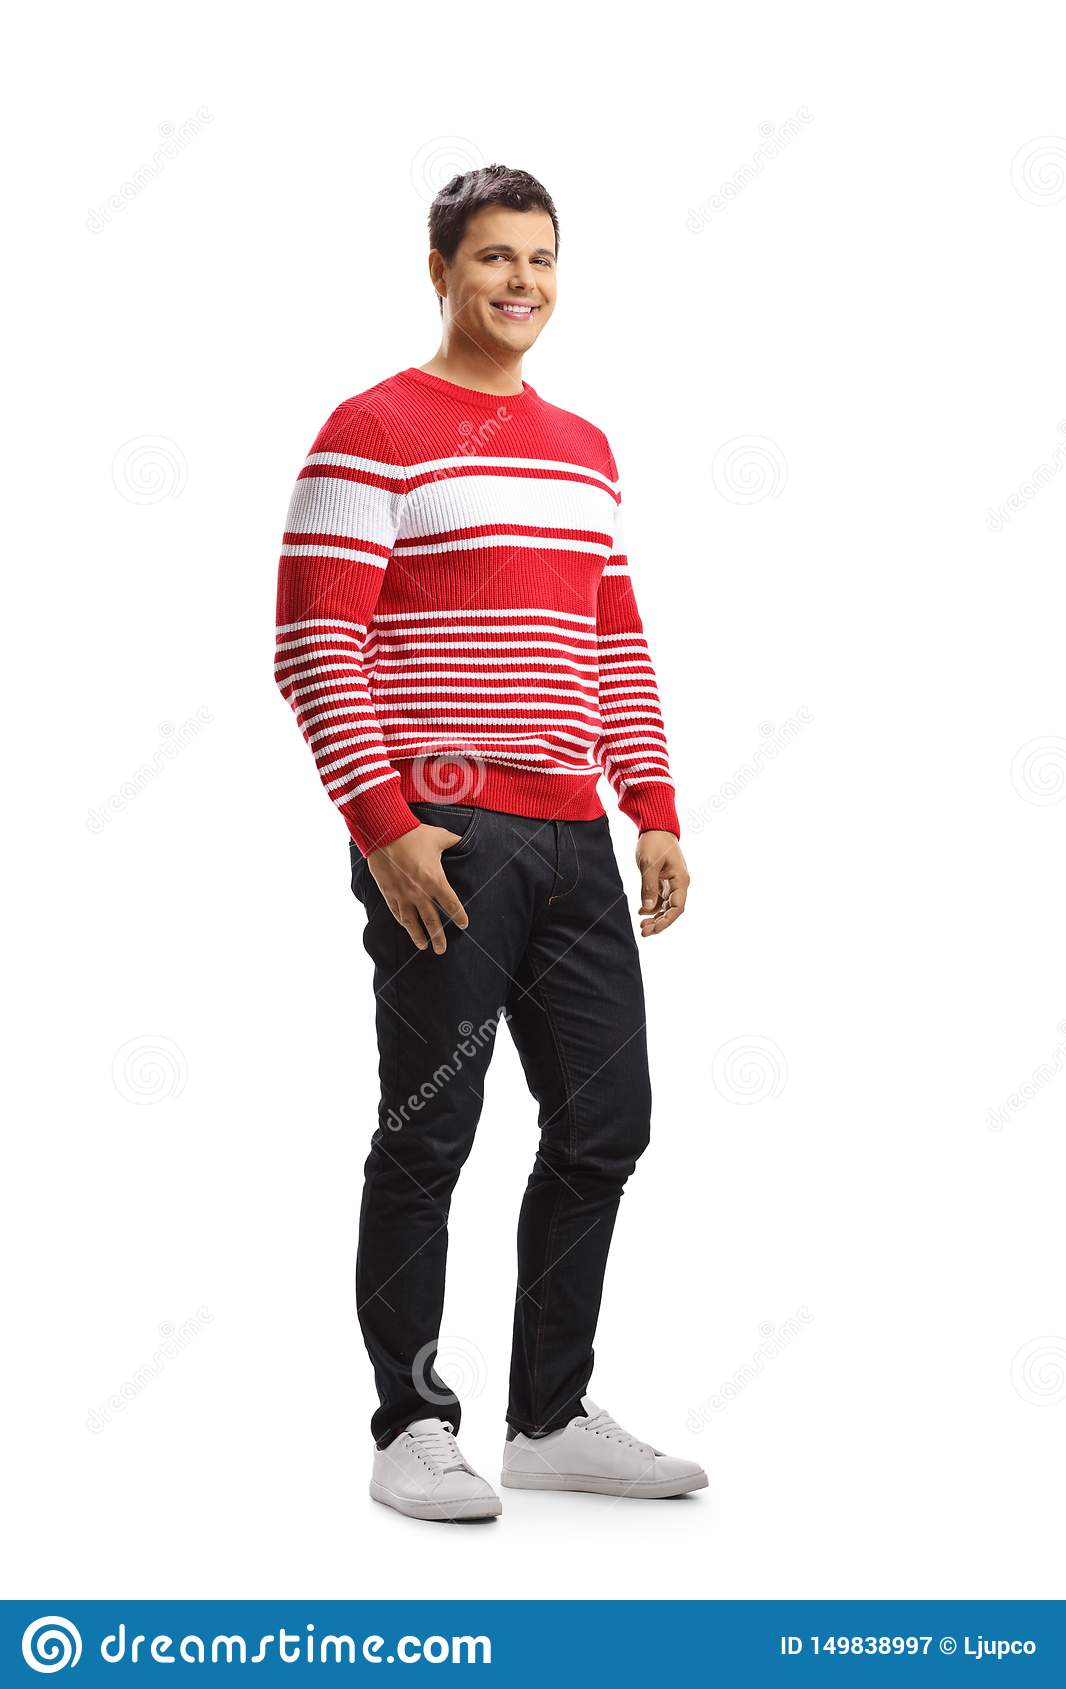 Smiling young man in a red sweater